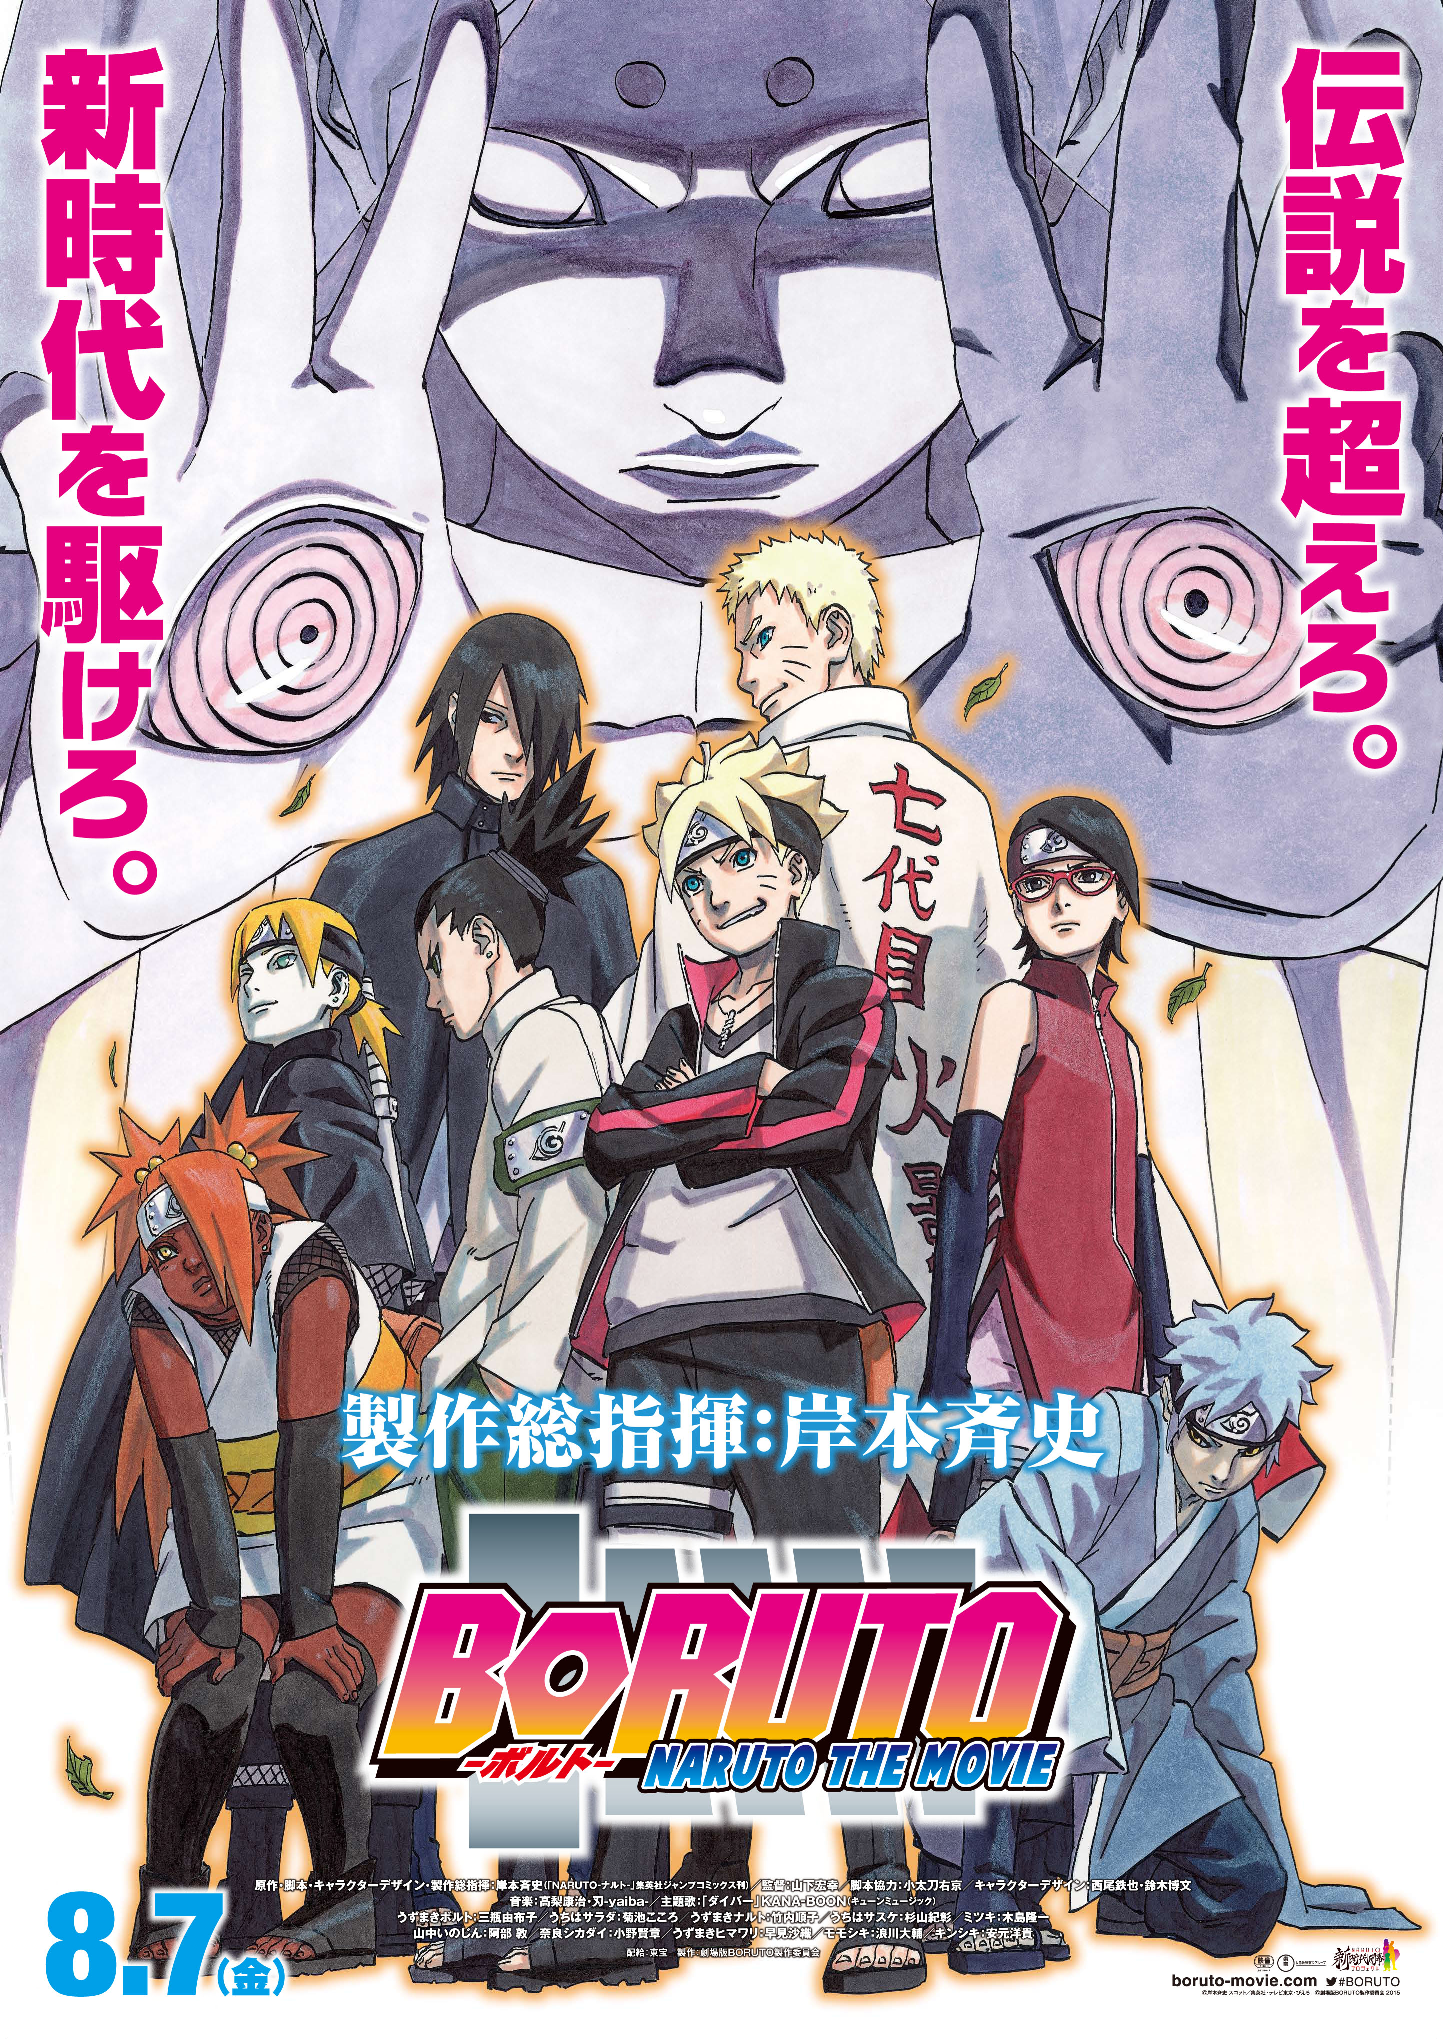 Boruto: Naruto the Movie - Wikipedia